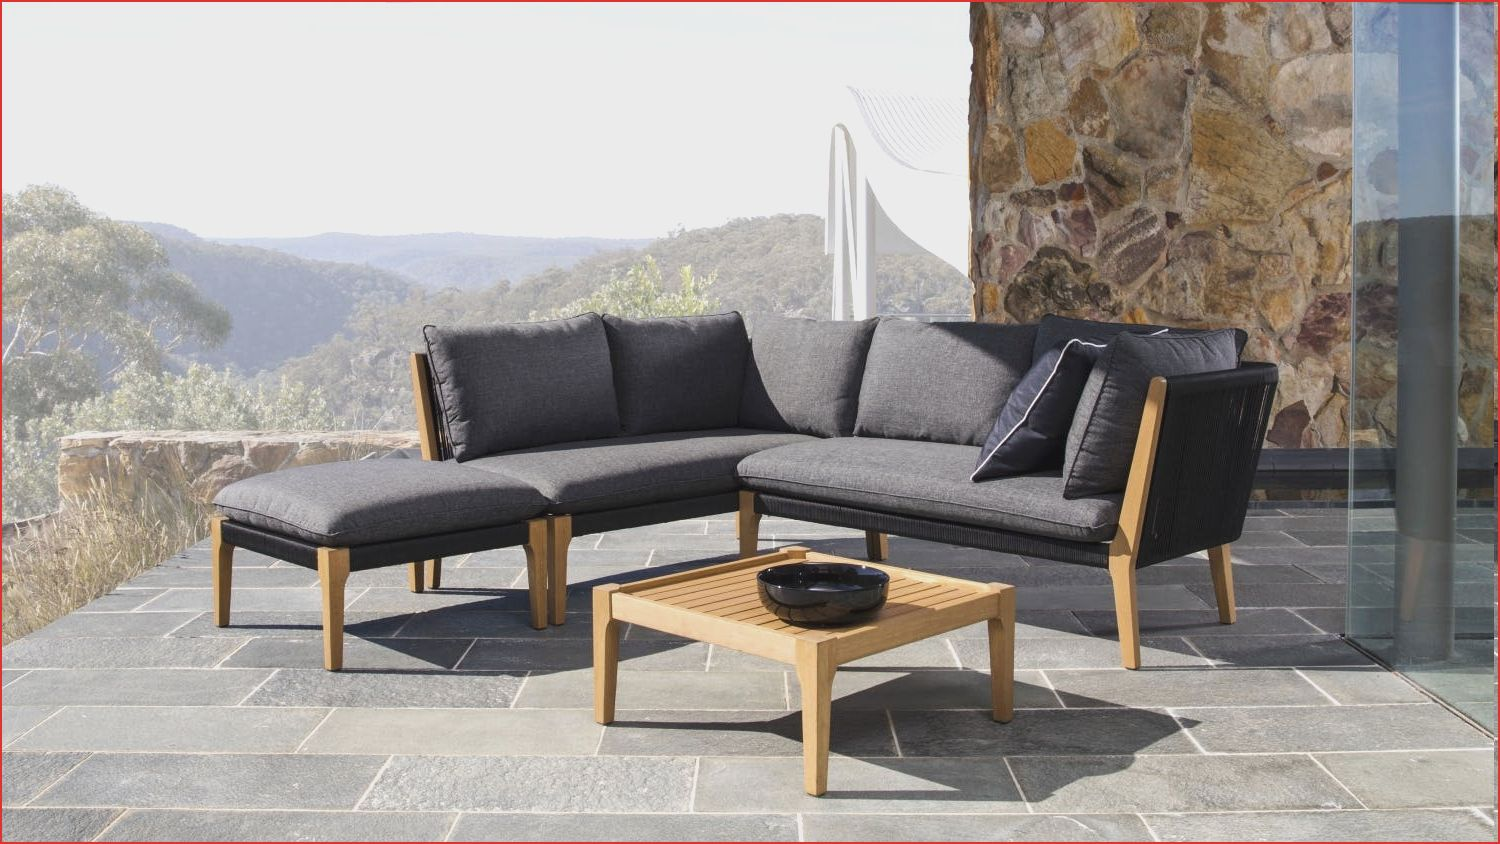 30 Luxus Lounge Sofa Outdoor O15p